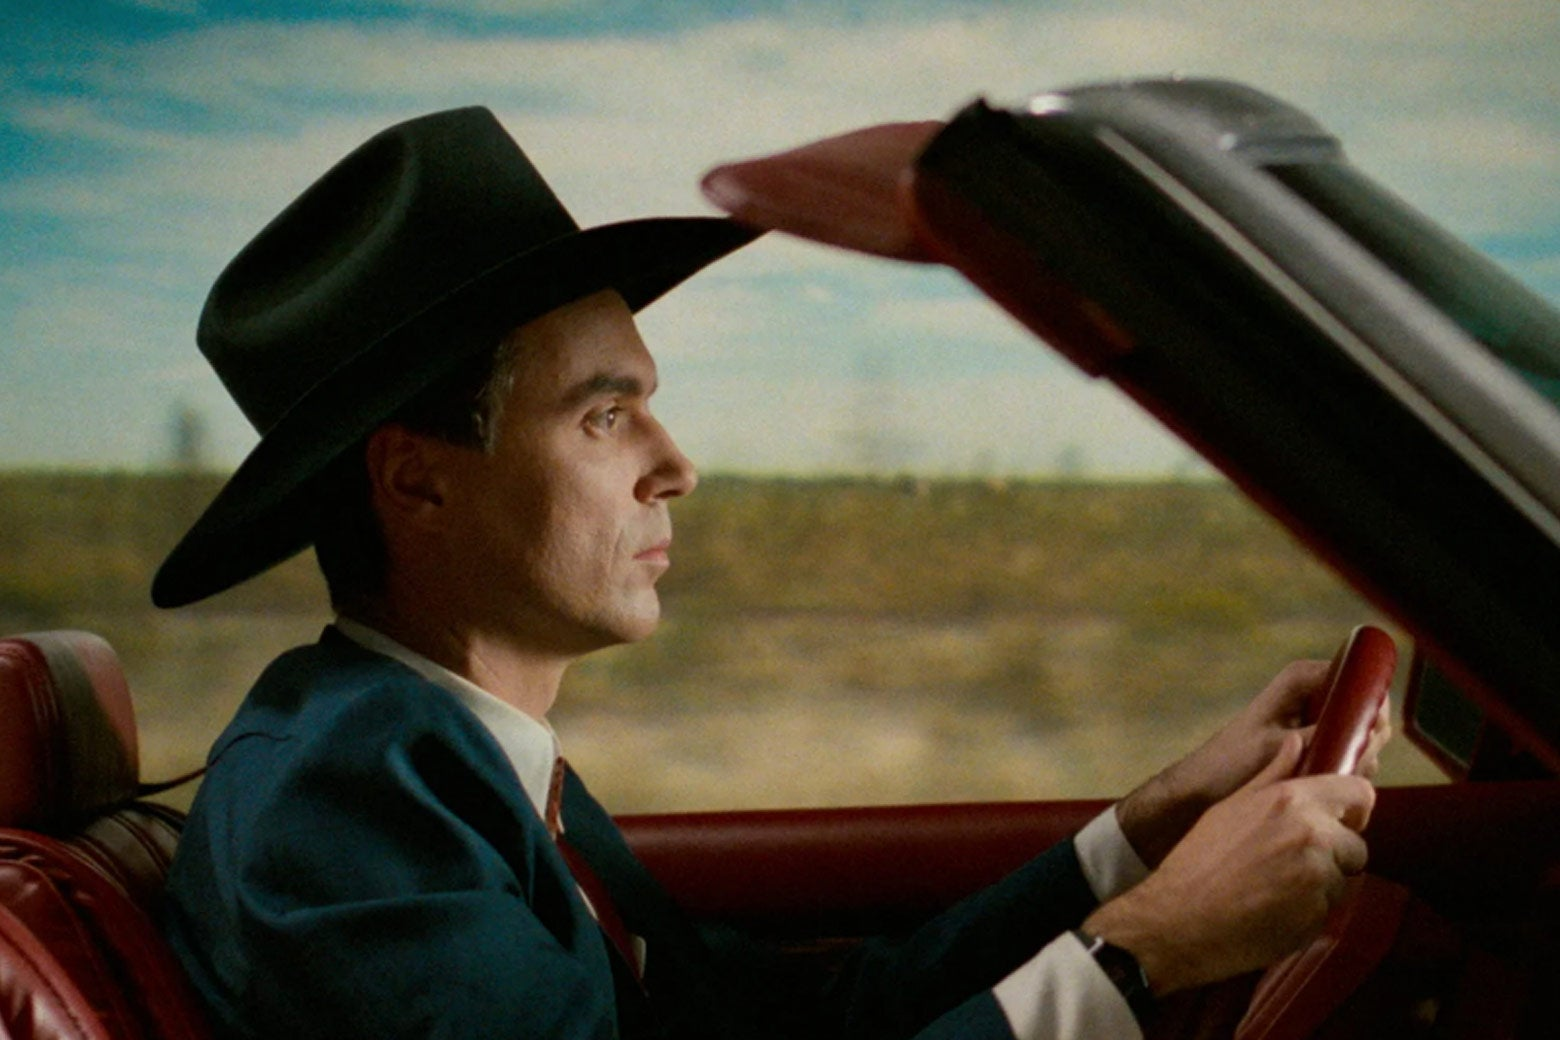 David Byrne driving in a convertible.